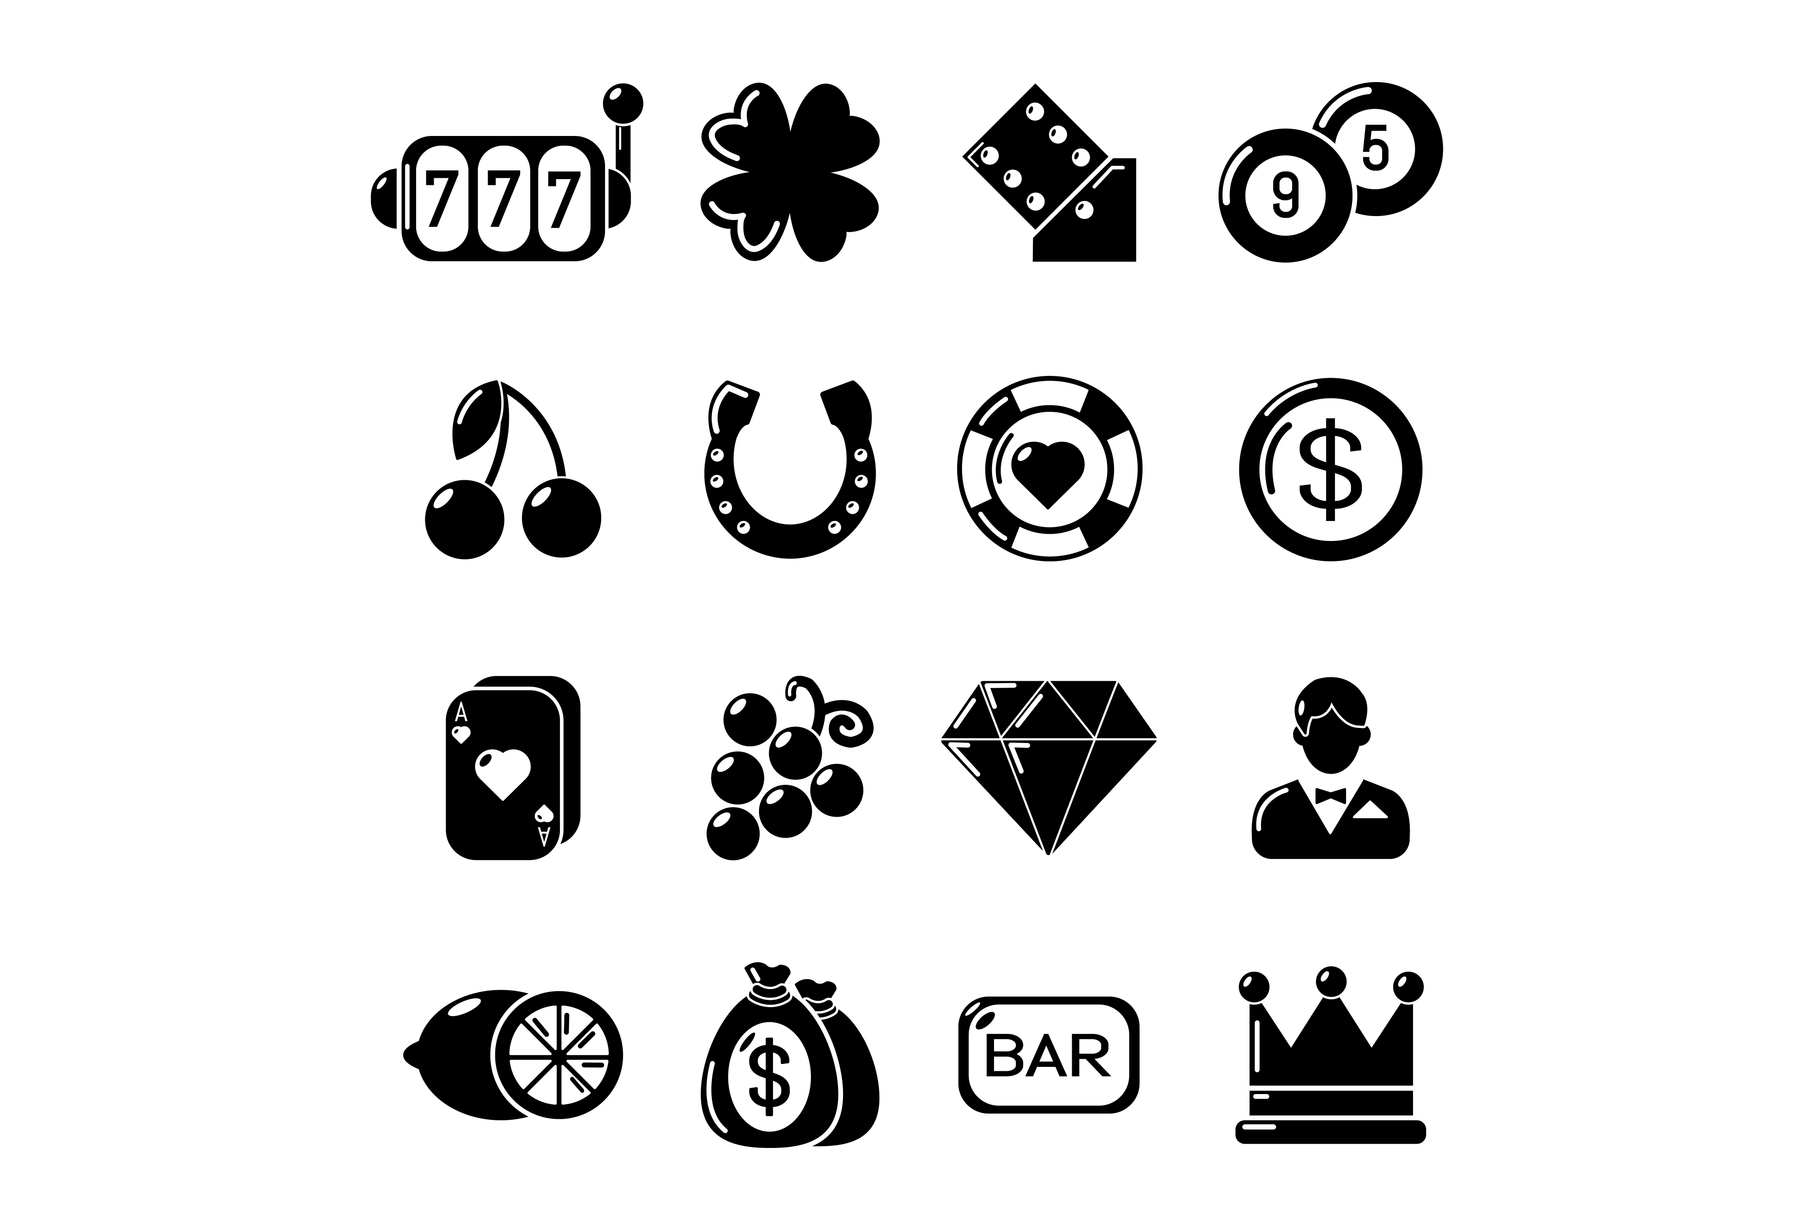 Casino icons set, simple style example image 1